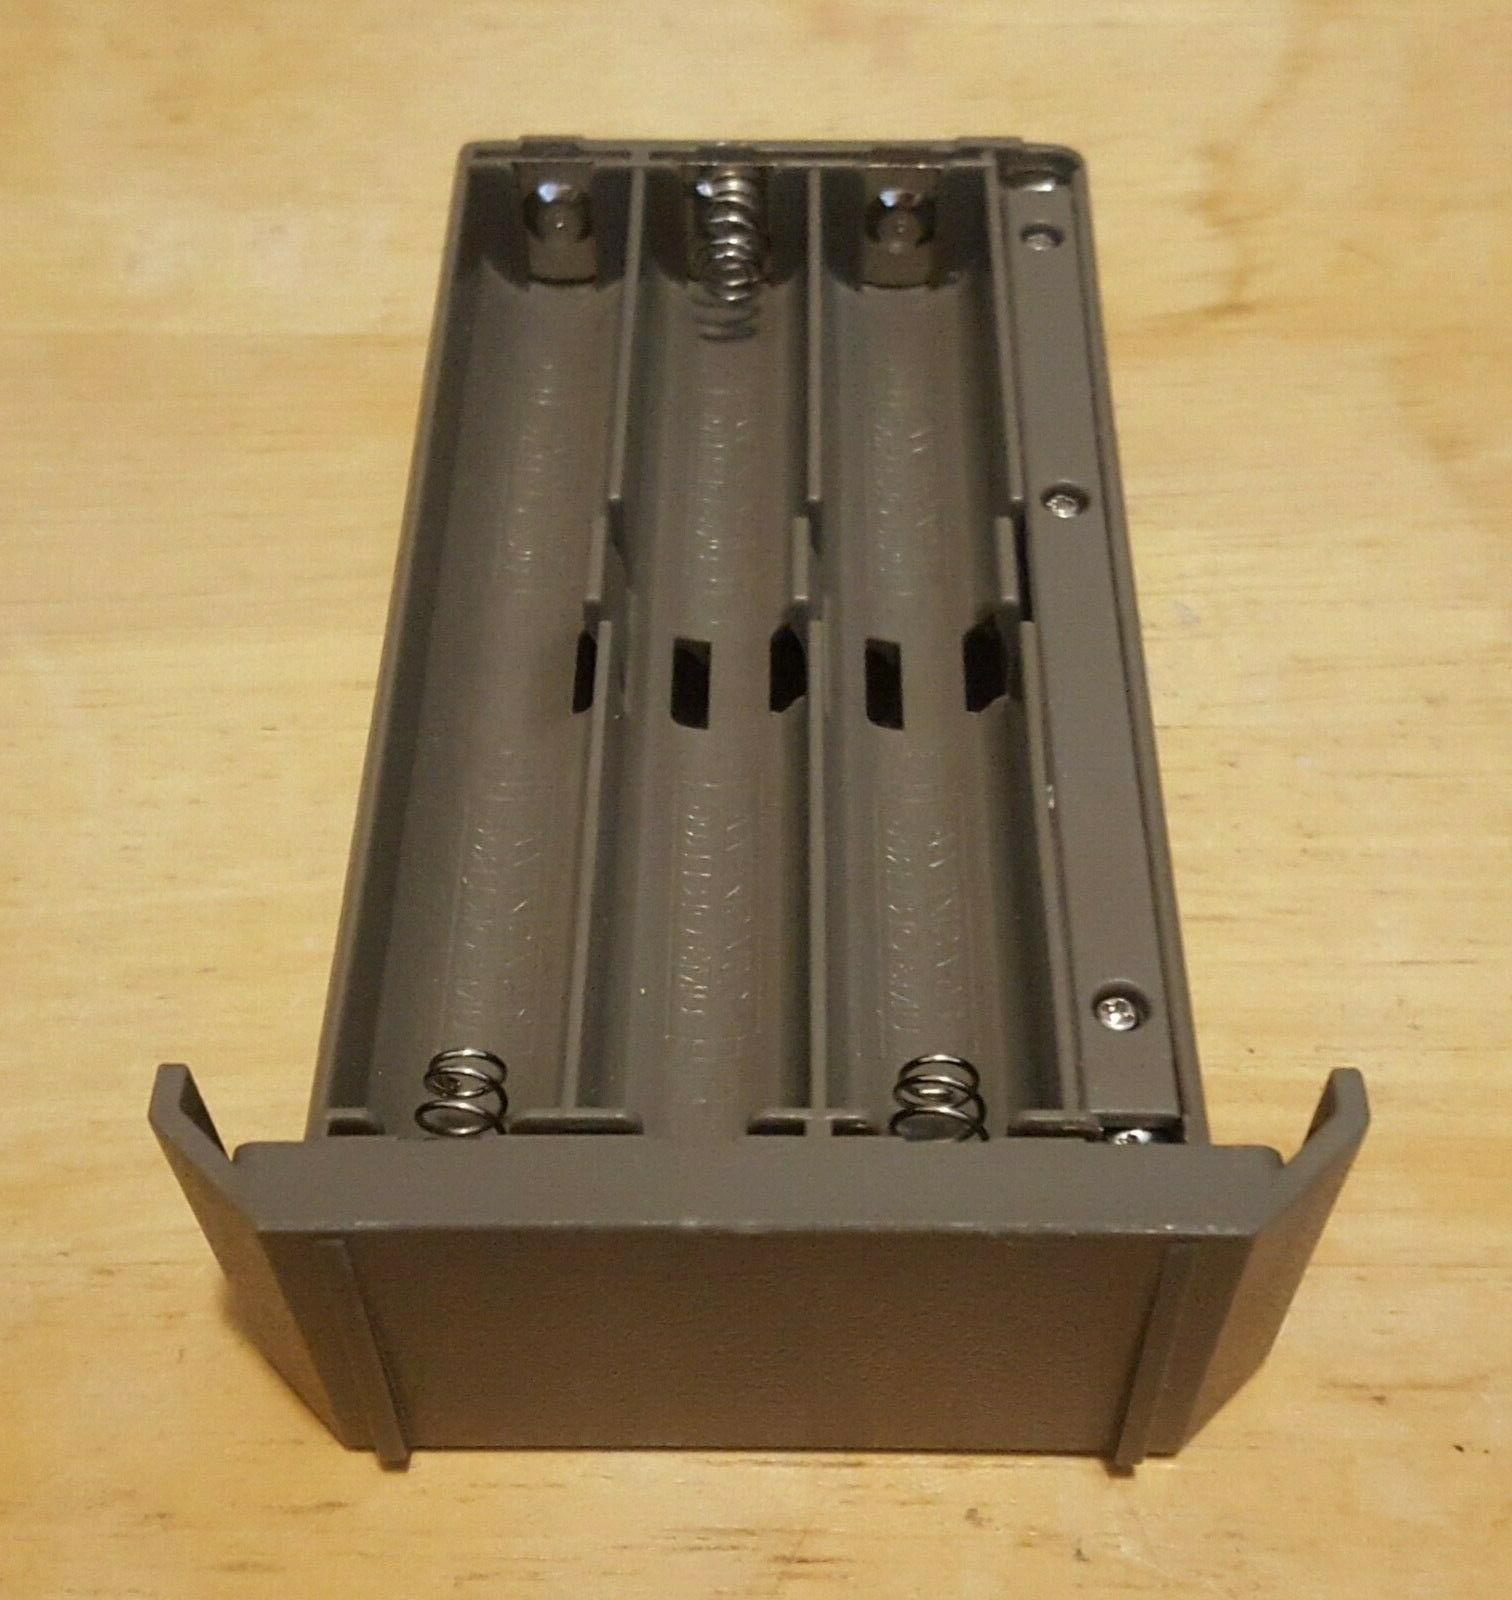 ds4k replacement battery box tray trail camera